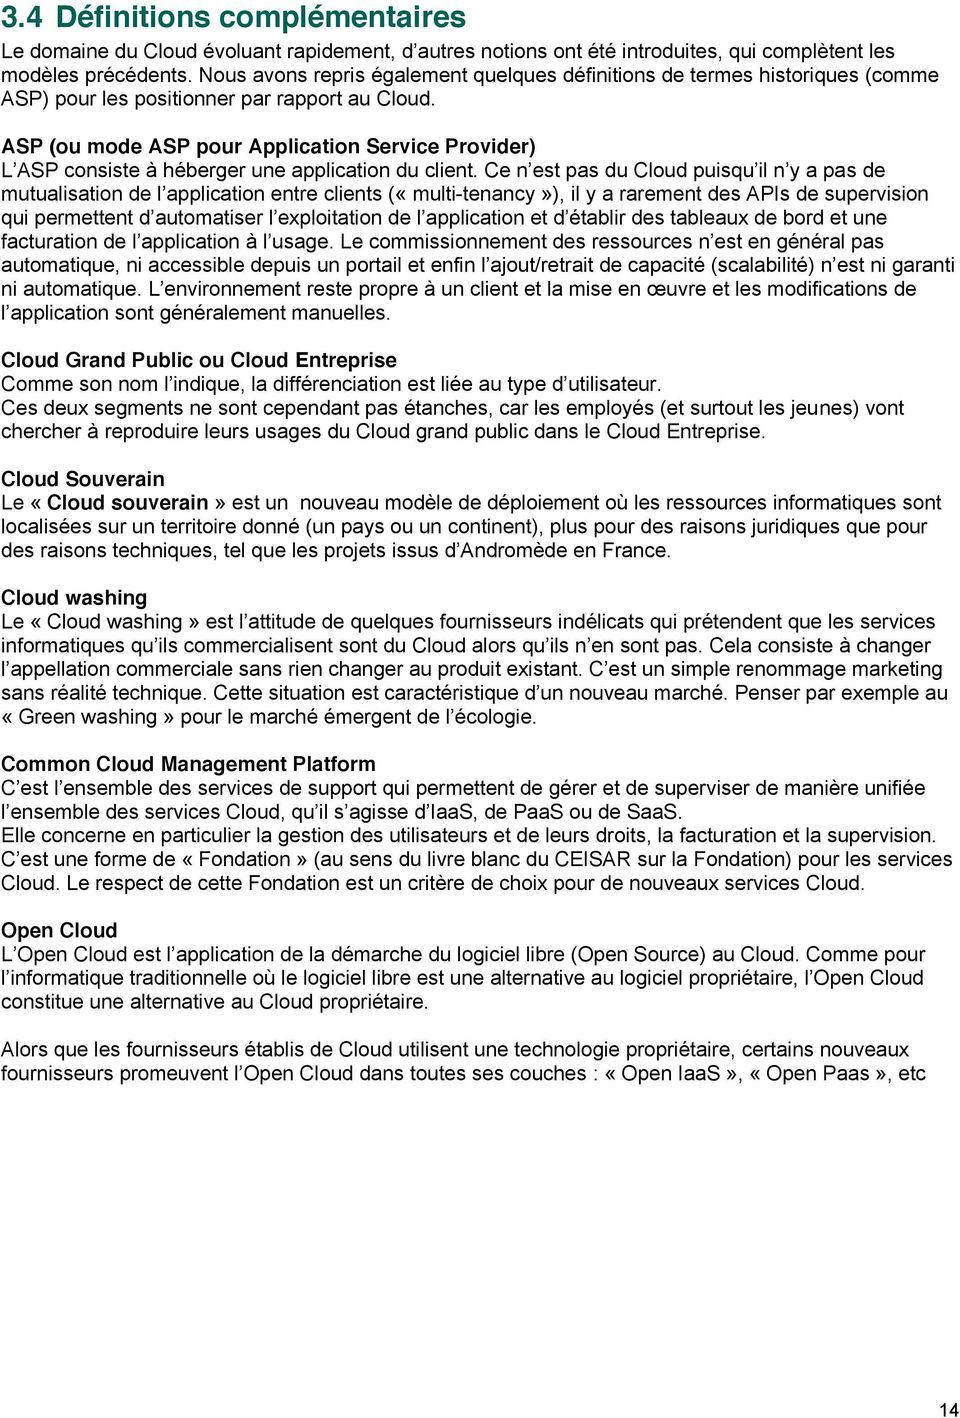 ASP (ou mode ASP pour Application Service Provider) L ASP consiste à héberger une application du client.